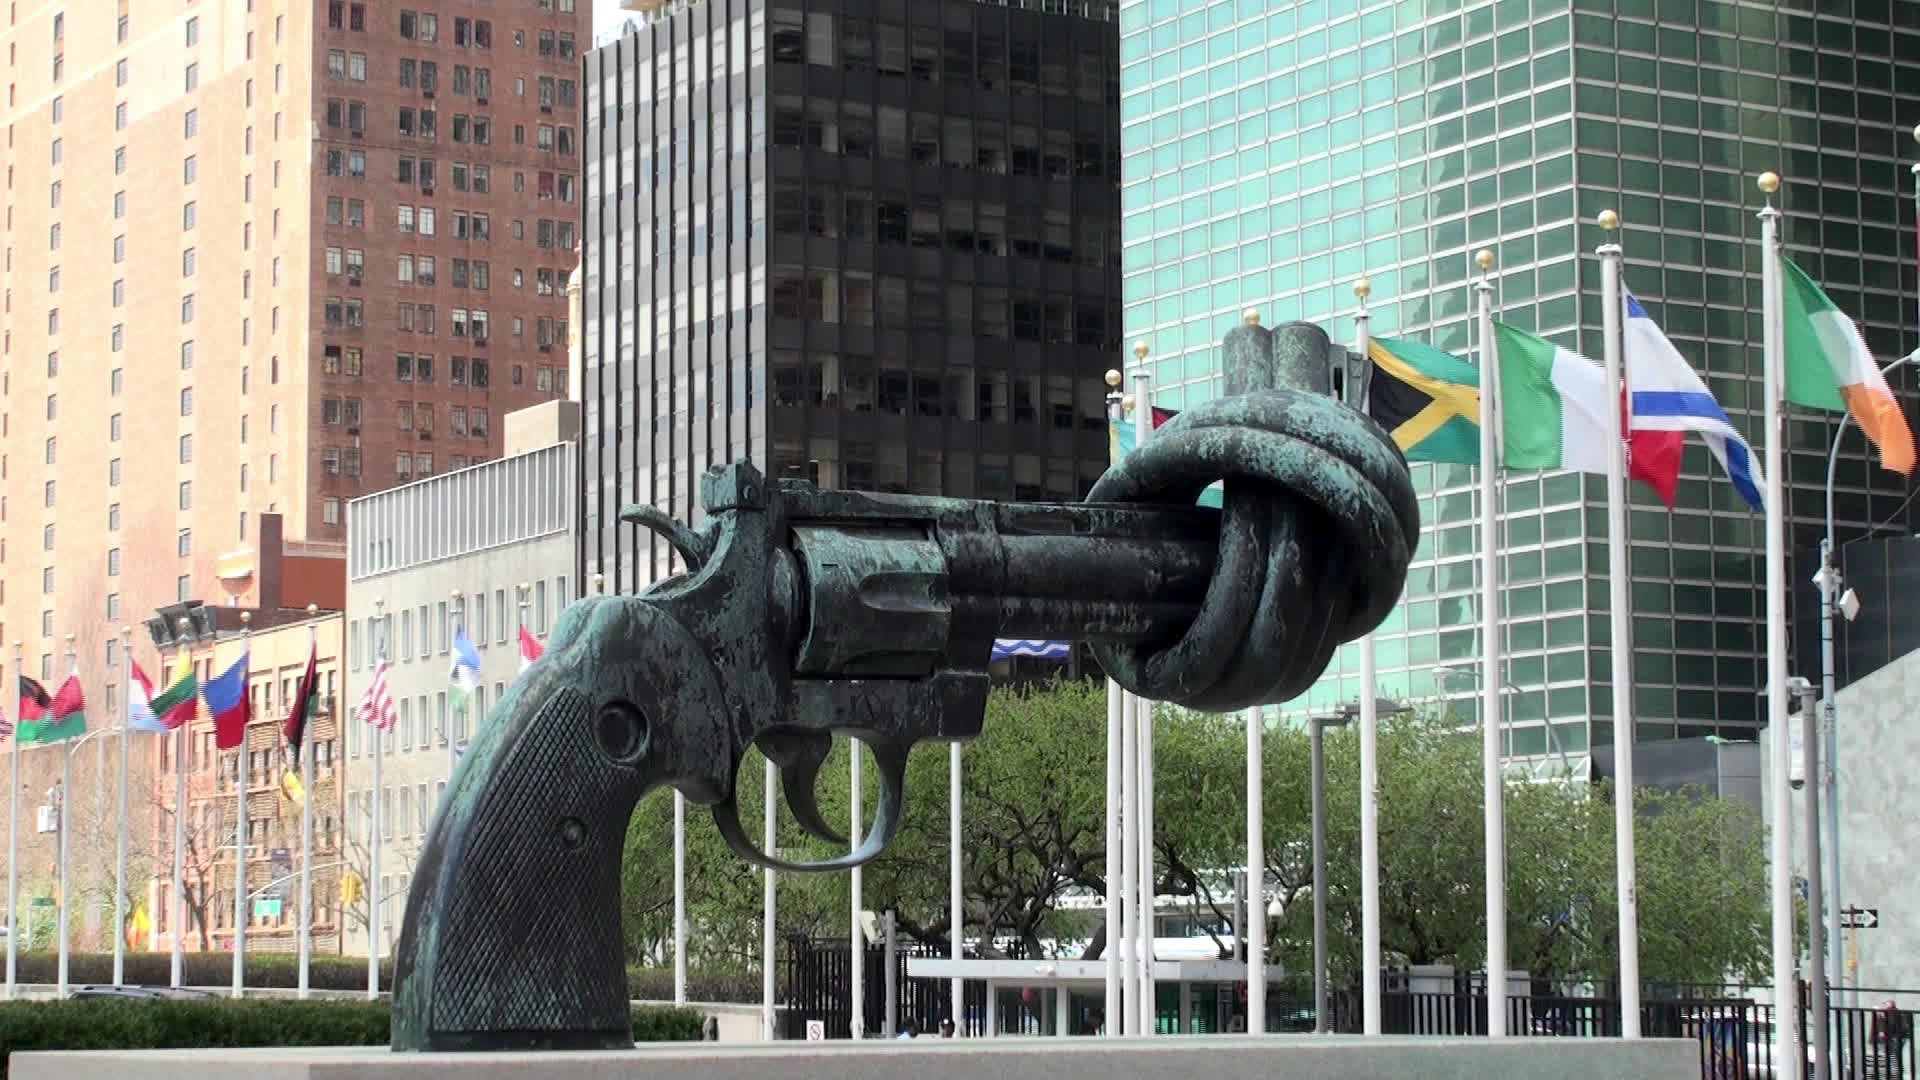 e2809cnon-violencee2809d-sculpture-by-karl-fredrik-reutersward-outside-un-headquarters-in-new-york1